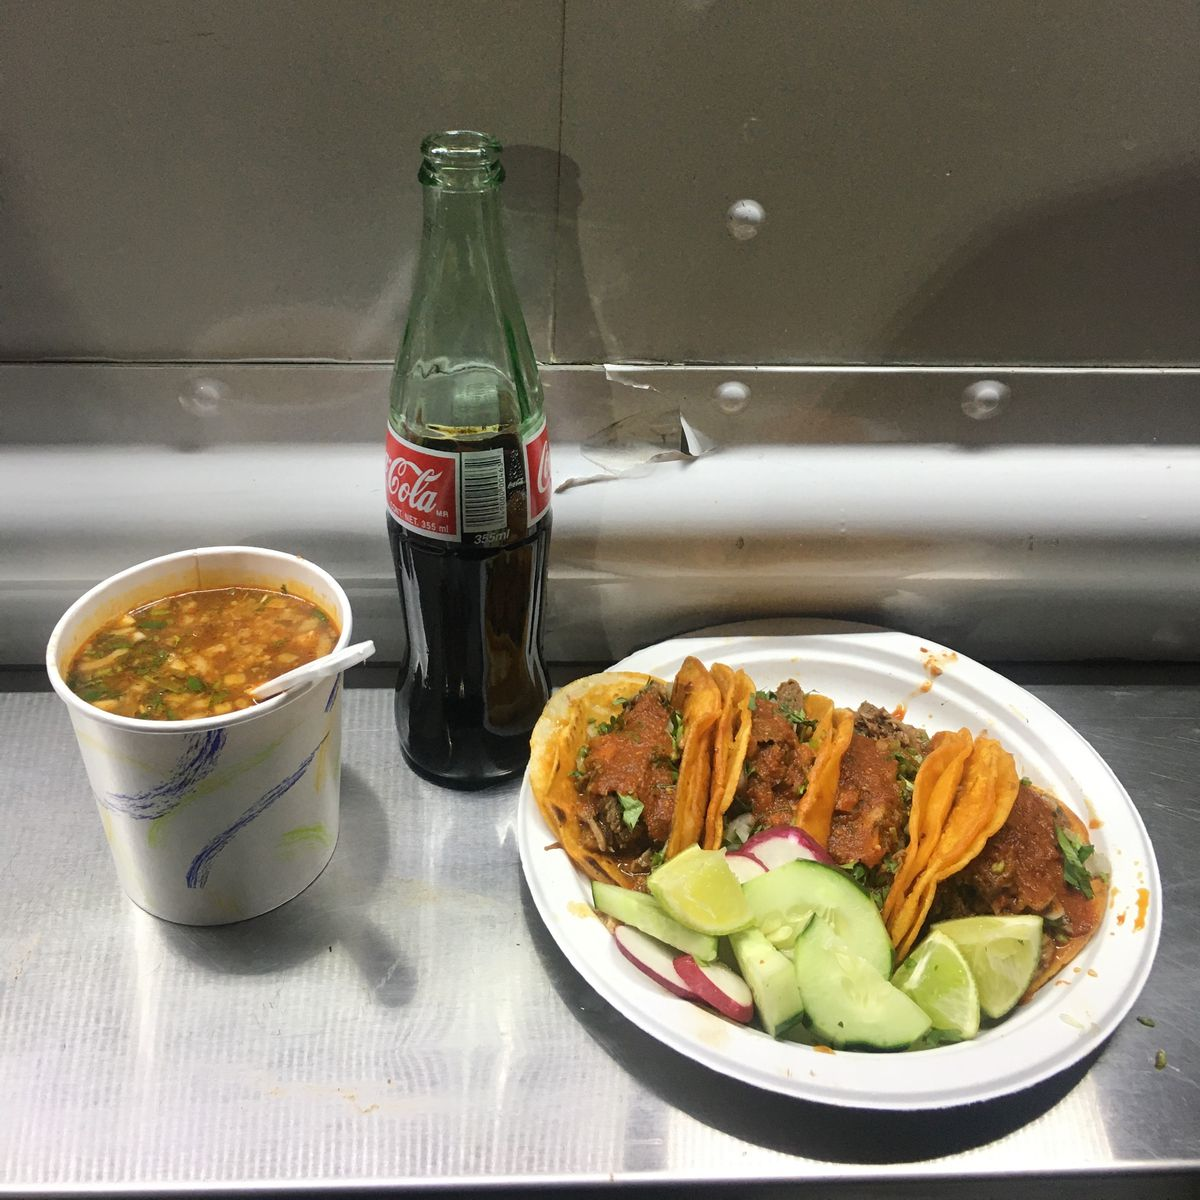 Four birria tacos made with beef, a tall cup of consomme, and a Coca-cola on a metal table